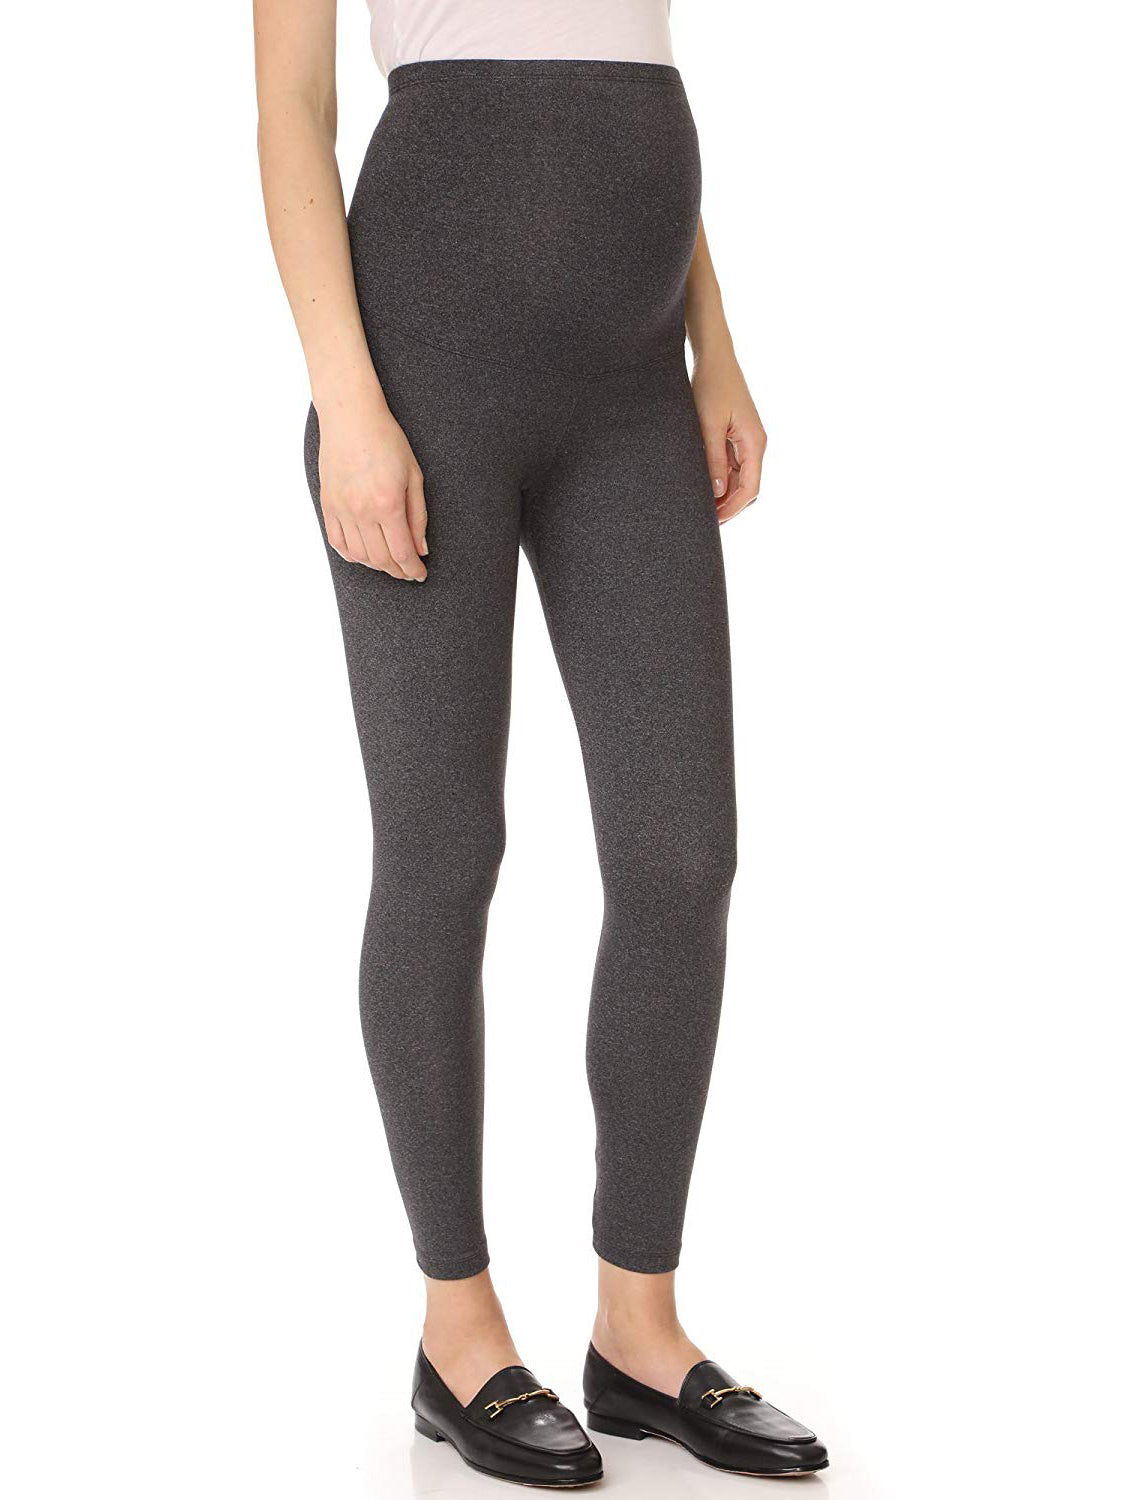 38a8fbe8c0cee David Lerner Women's Maternity Leggings - Charcoal Grey | TILDEN